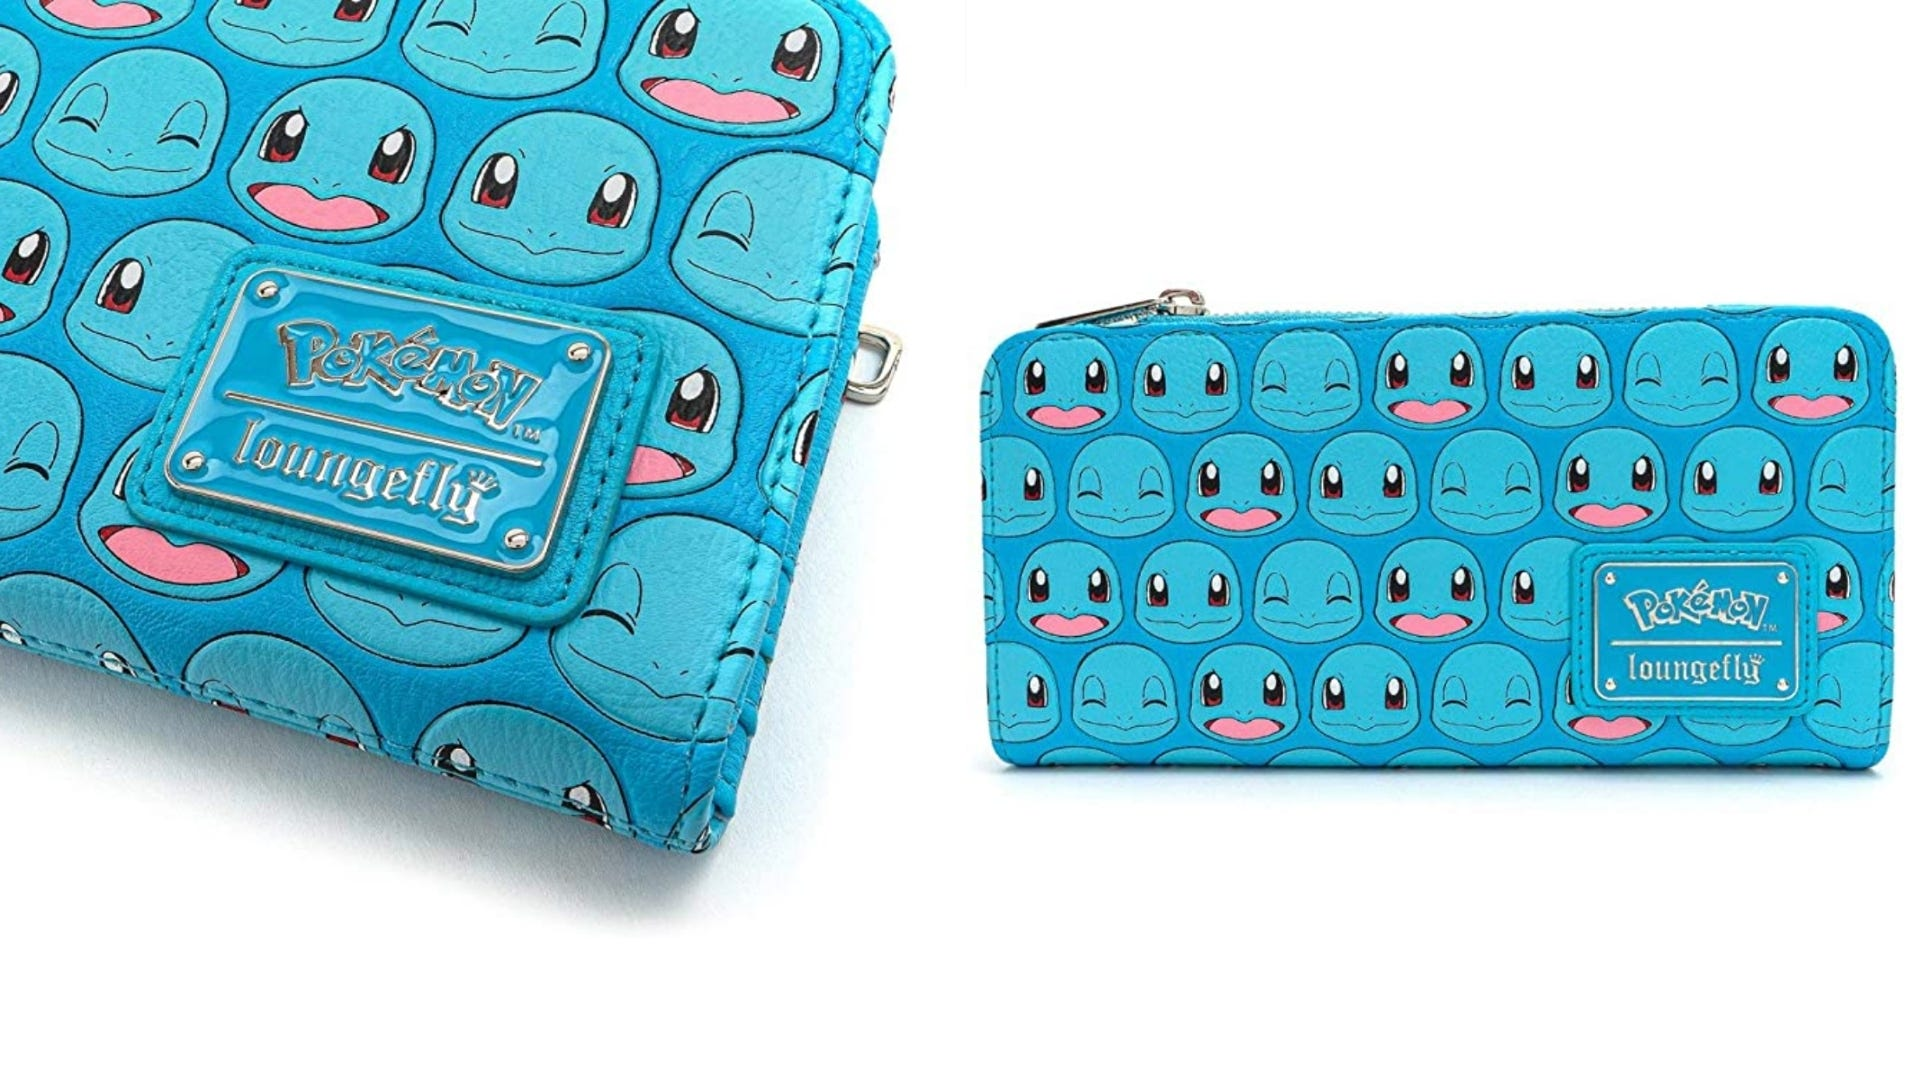 A blue Squirtle Pokemon wallet.